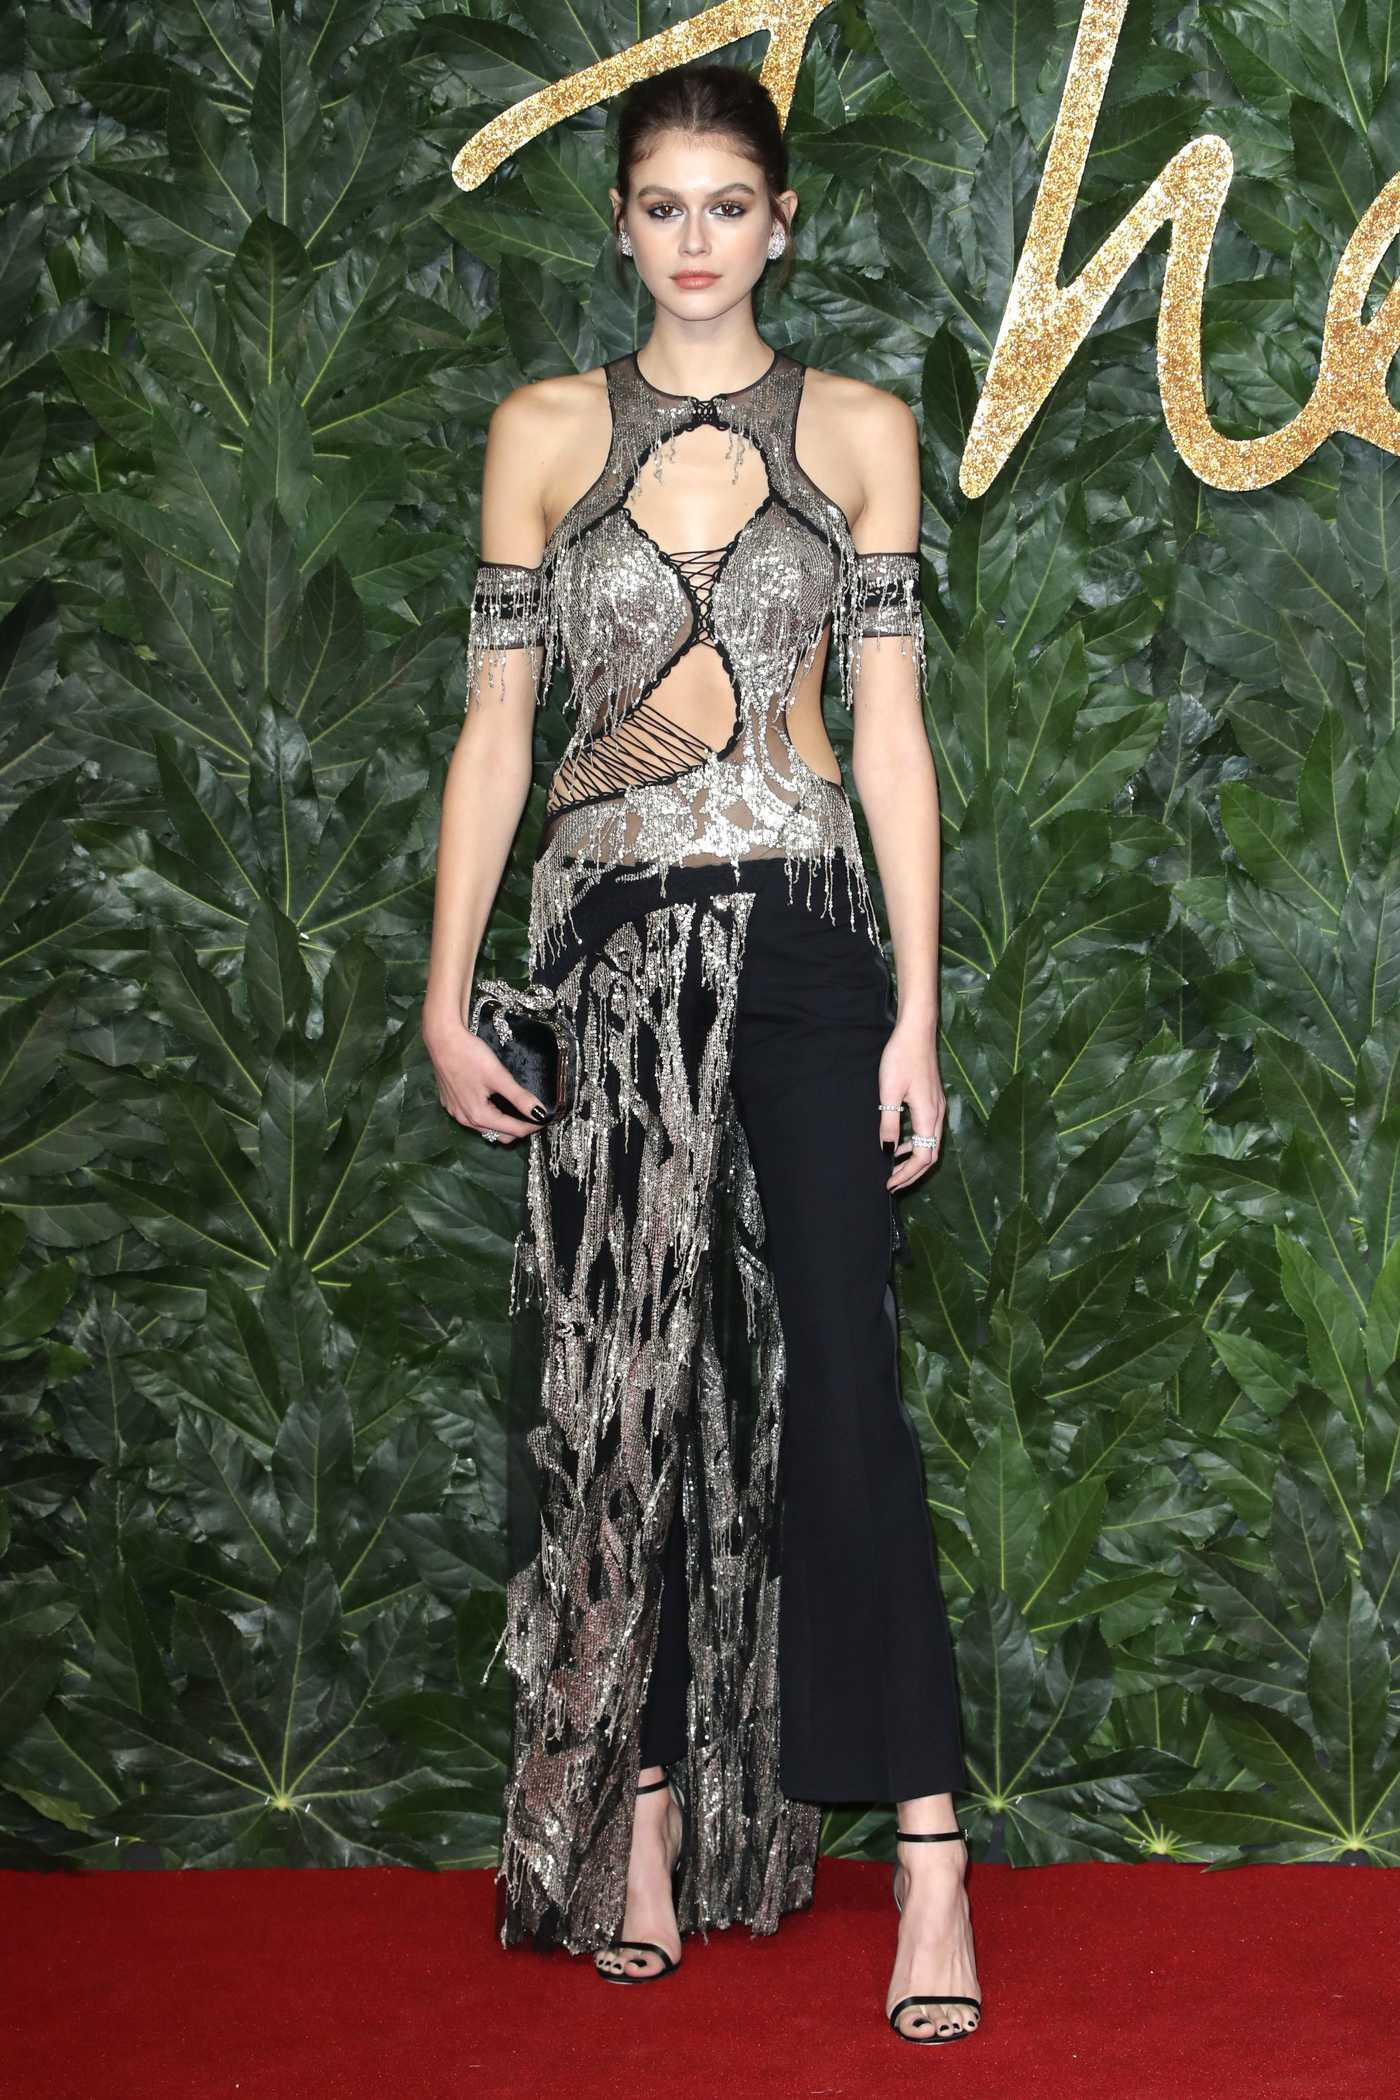 Kaia Gerber Attends 2018 British Fashion Awards in London 12/10/2018